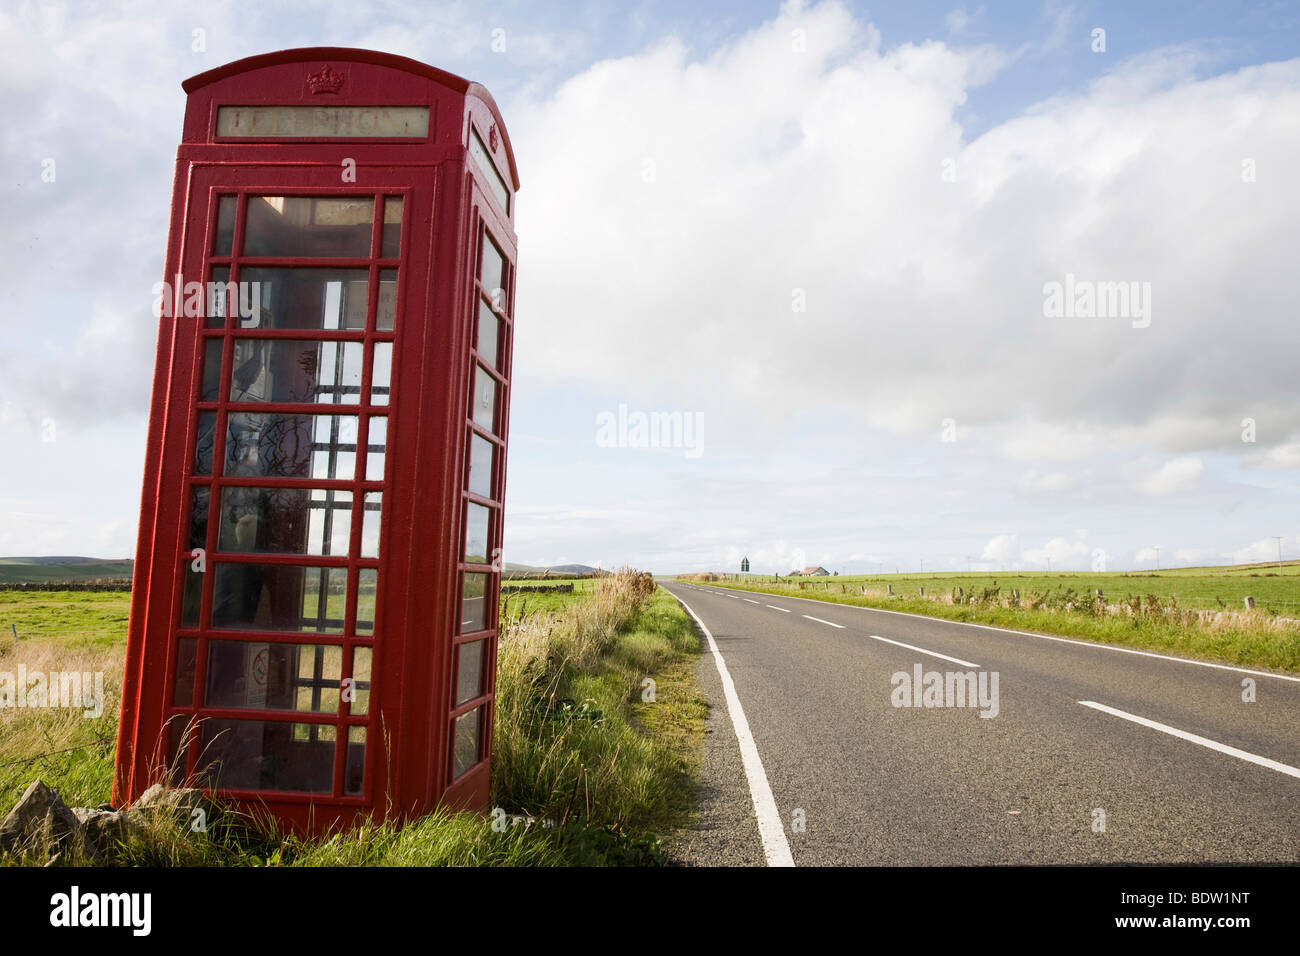 red phone box in scenery, orkney islands, scotland - Stock Image